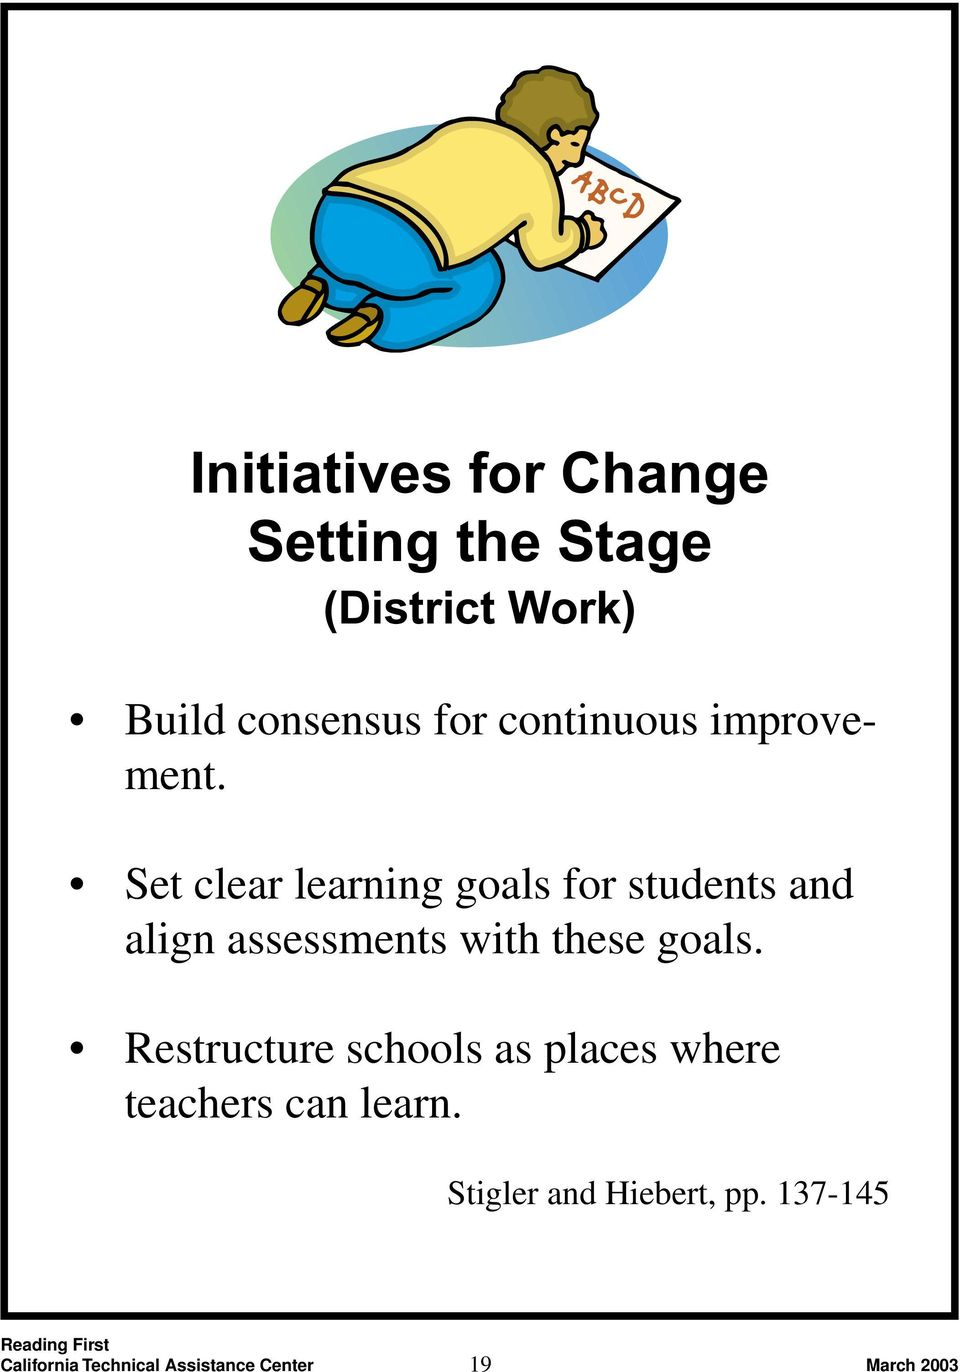 Set clear learning goals for students and align assessments with